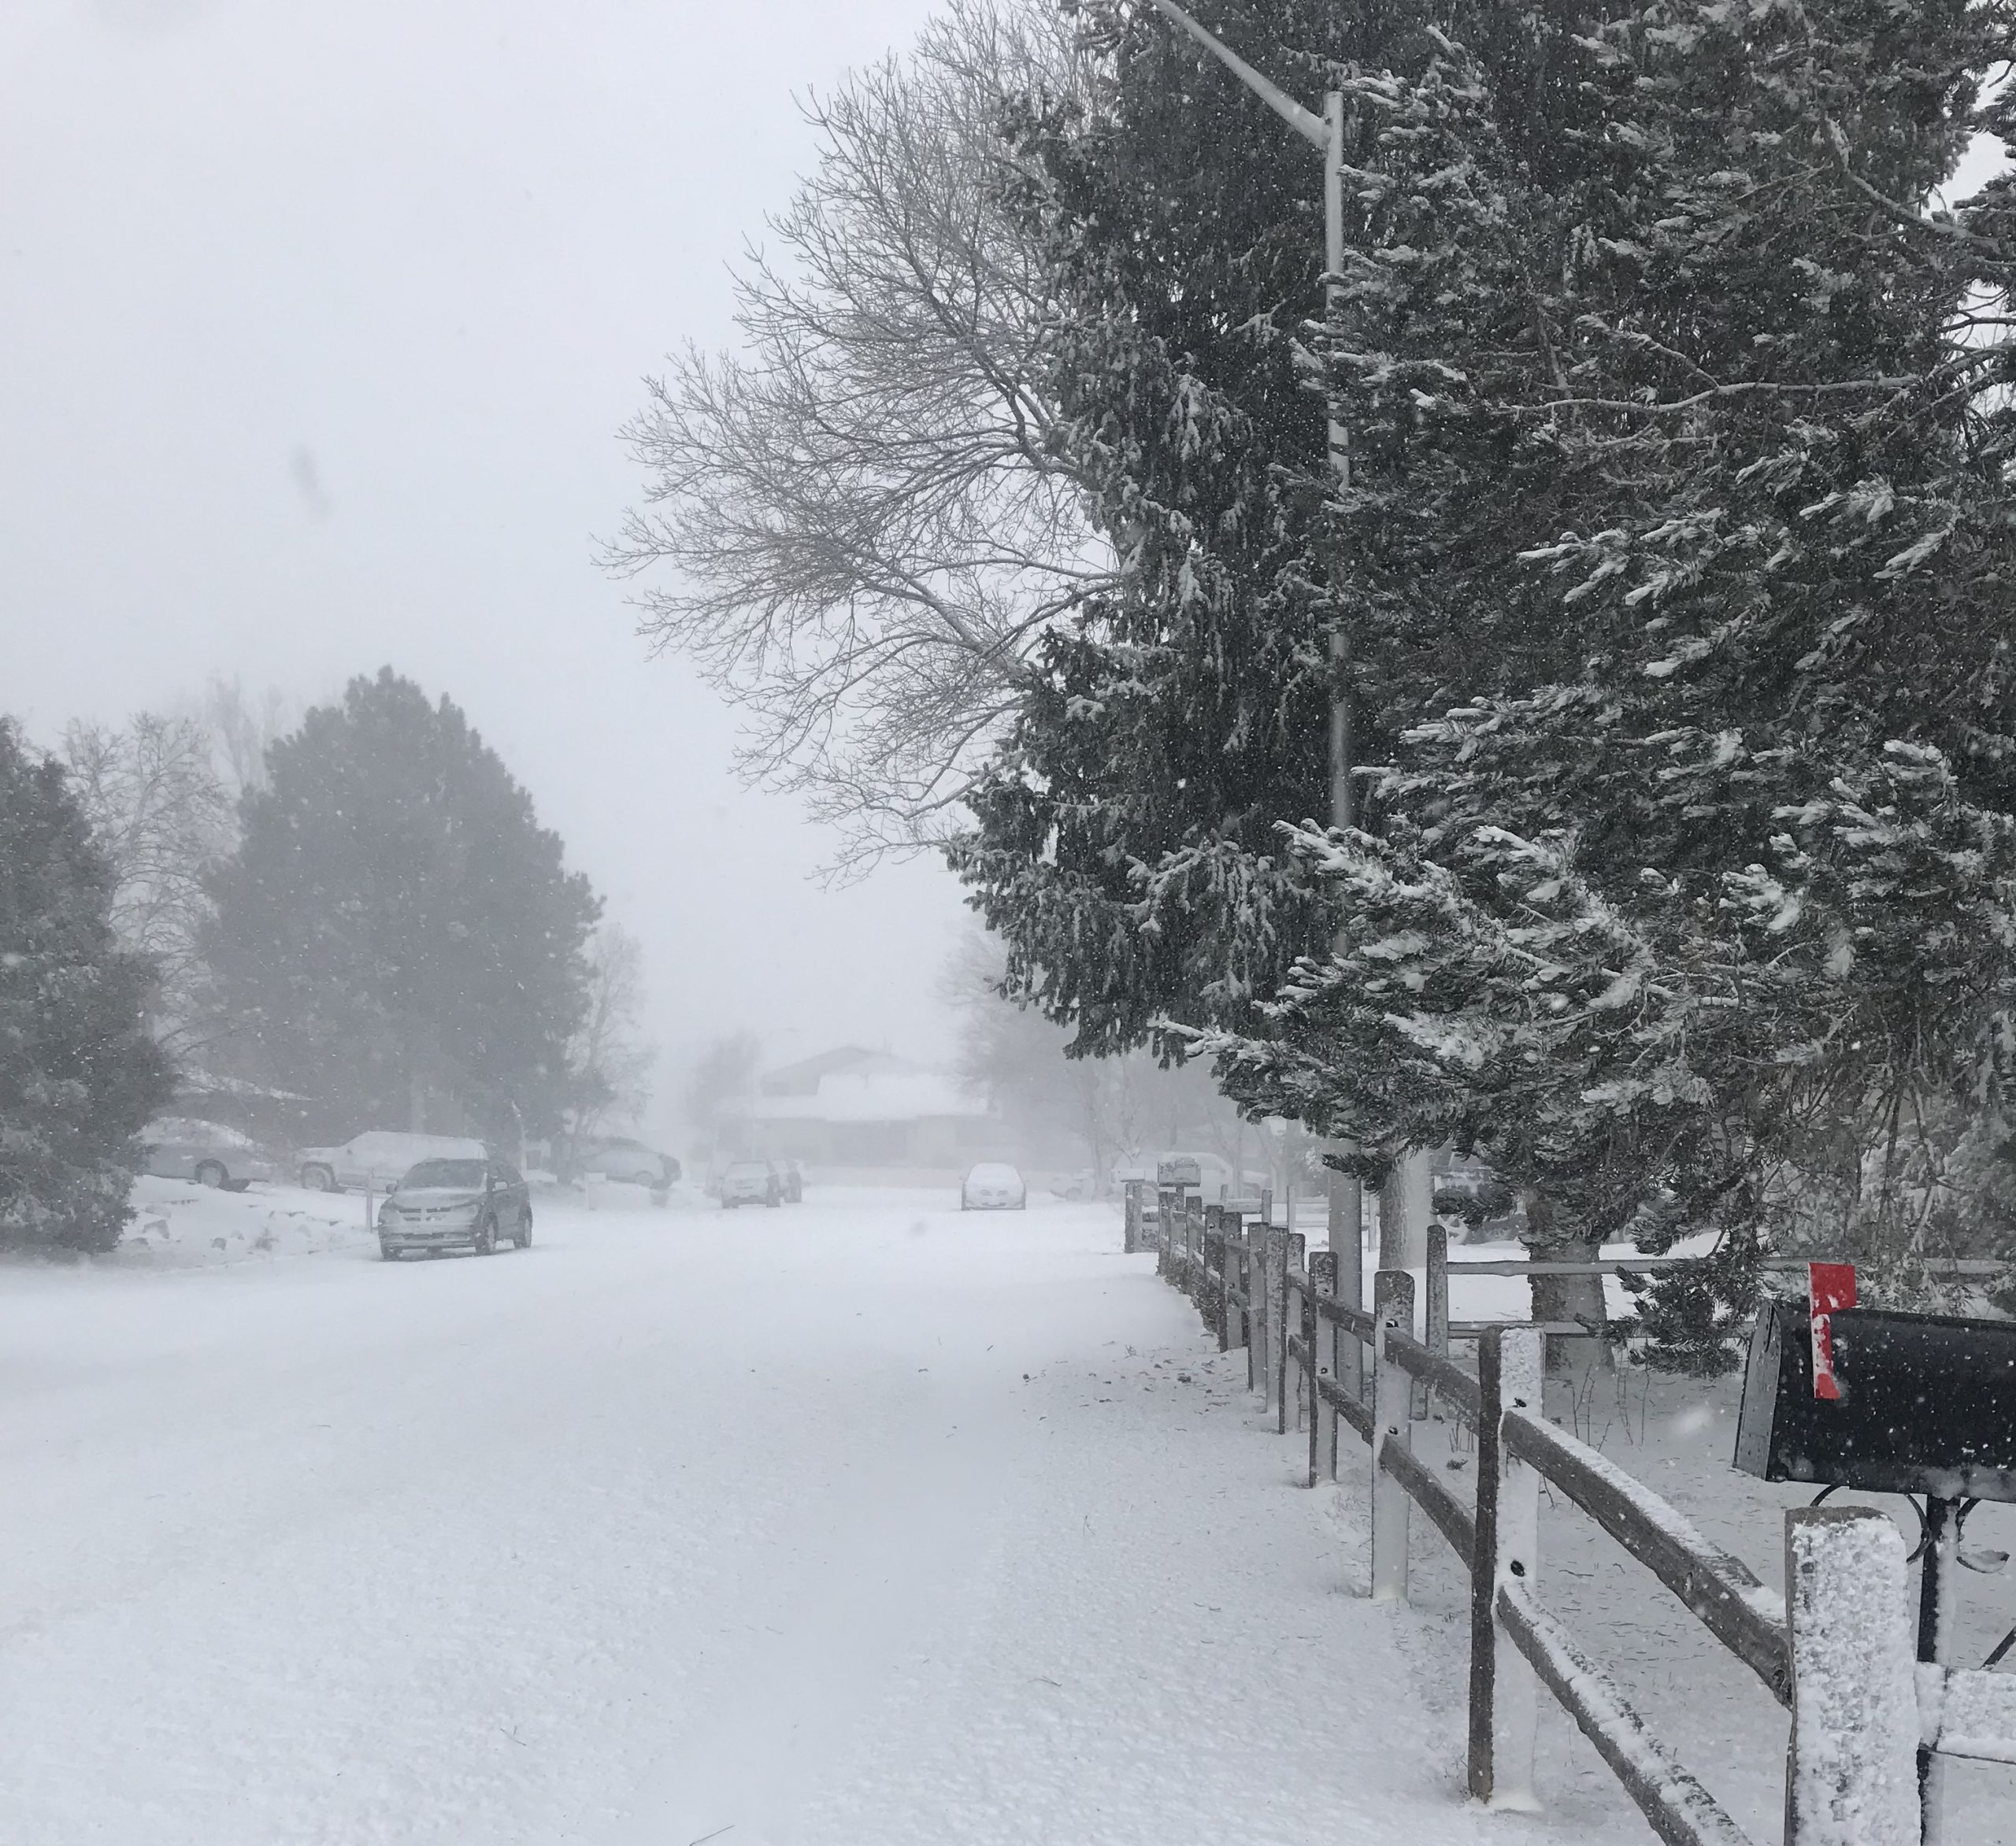 Snow blanketed a residential street on the east side of Colorado Springs by mid-afternoon. Strong winds along with heavy snow led to stranded motorists and road closures across the city.